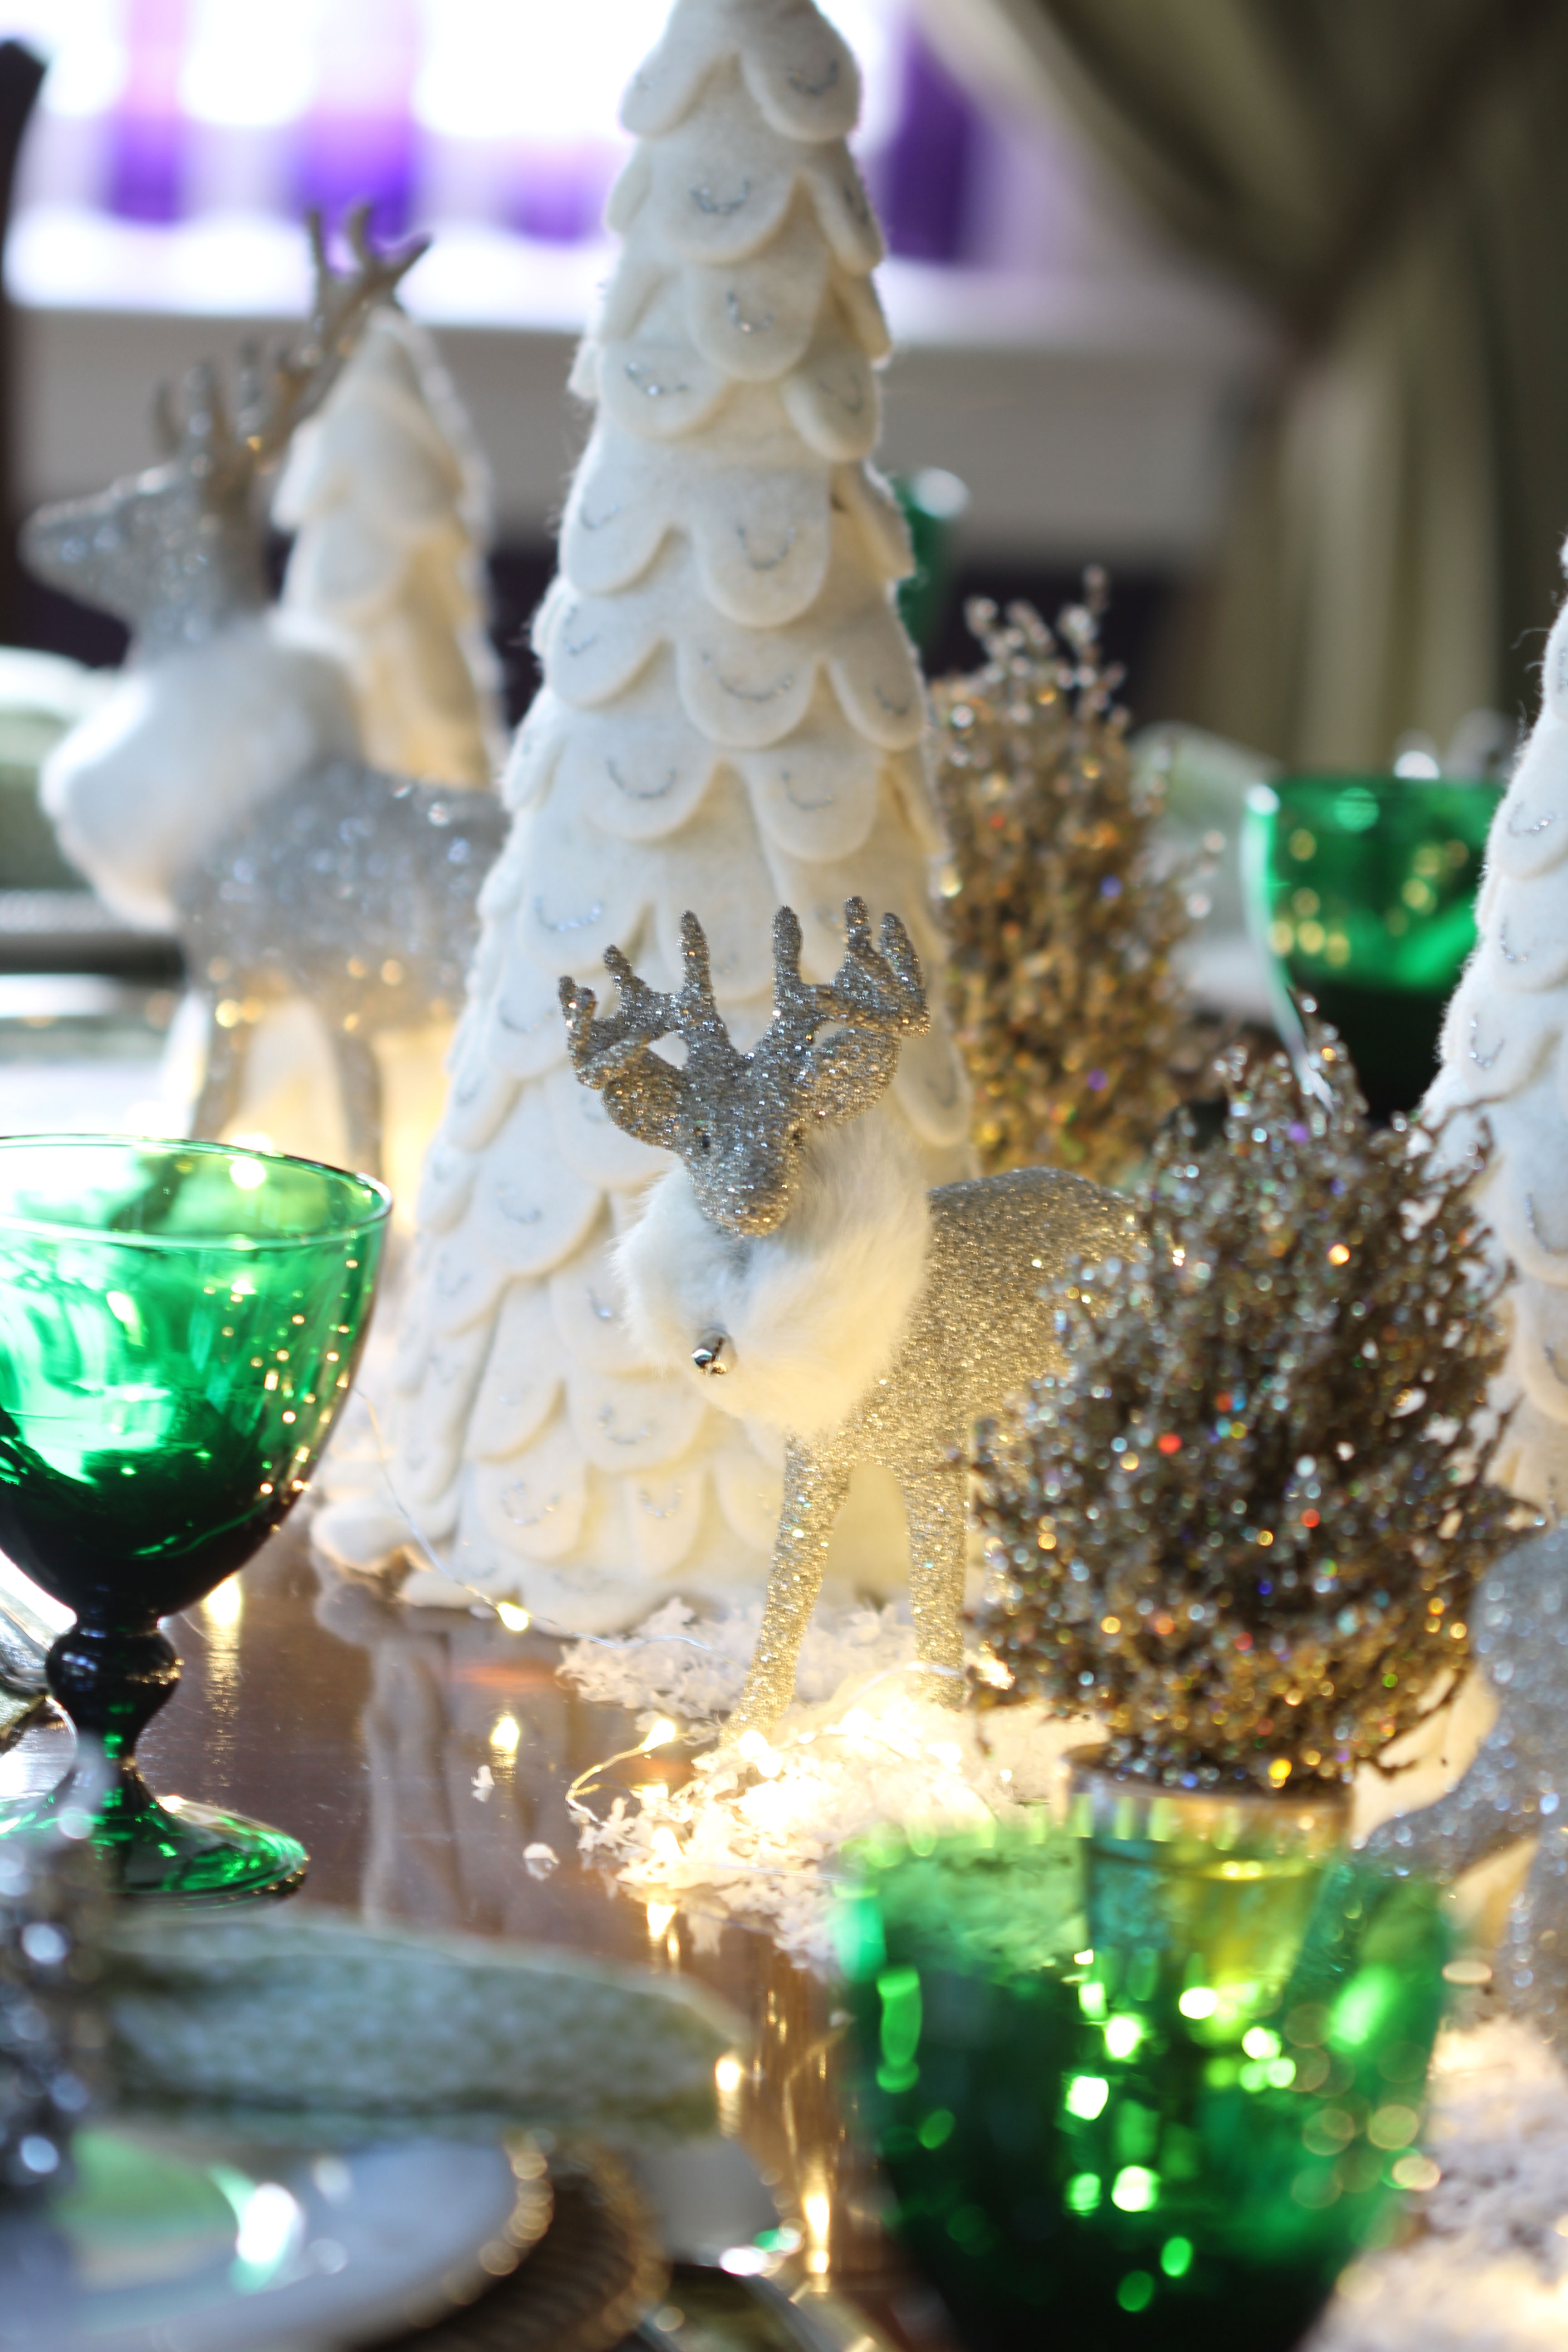 For a recent Christmas dinner, Ridgely Brode created a Snowy Christmas Table for her guests and shares it on her blog, Ridgely's Radar.